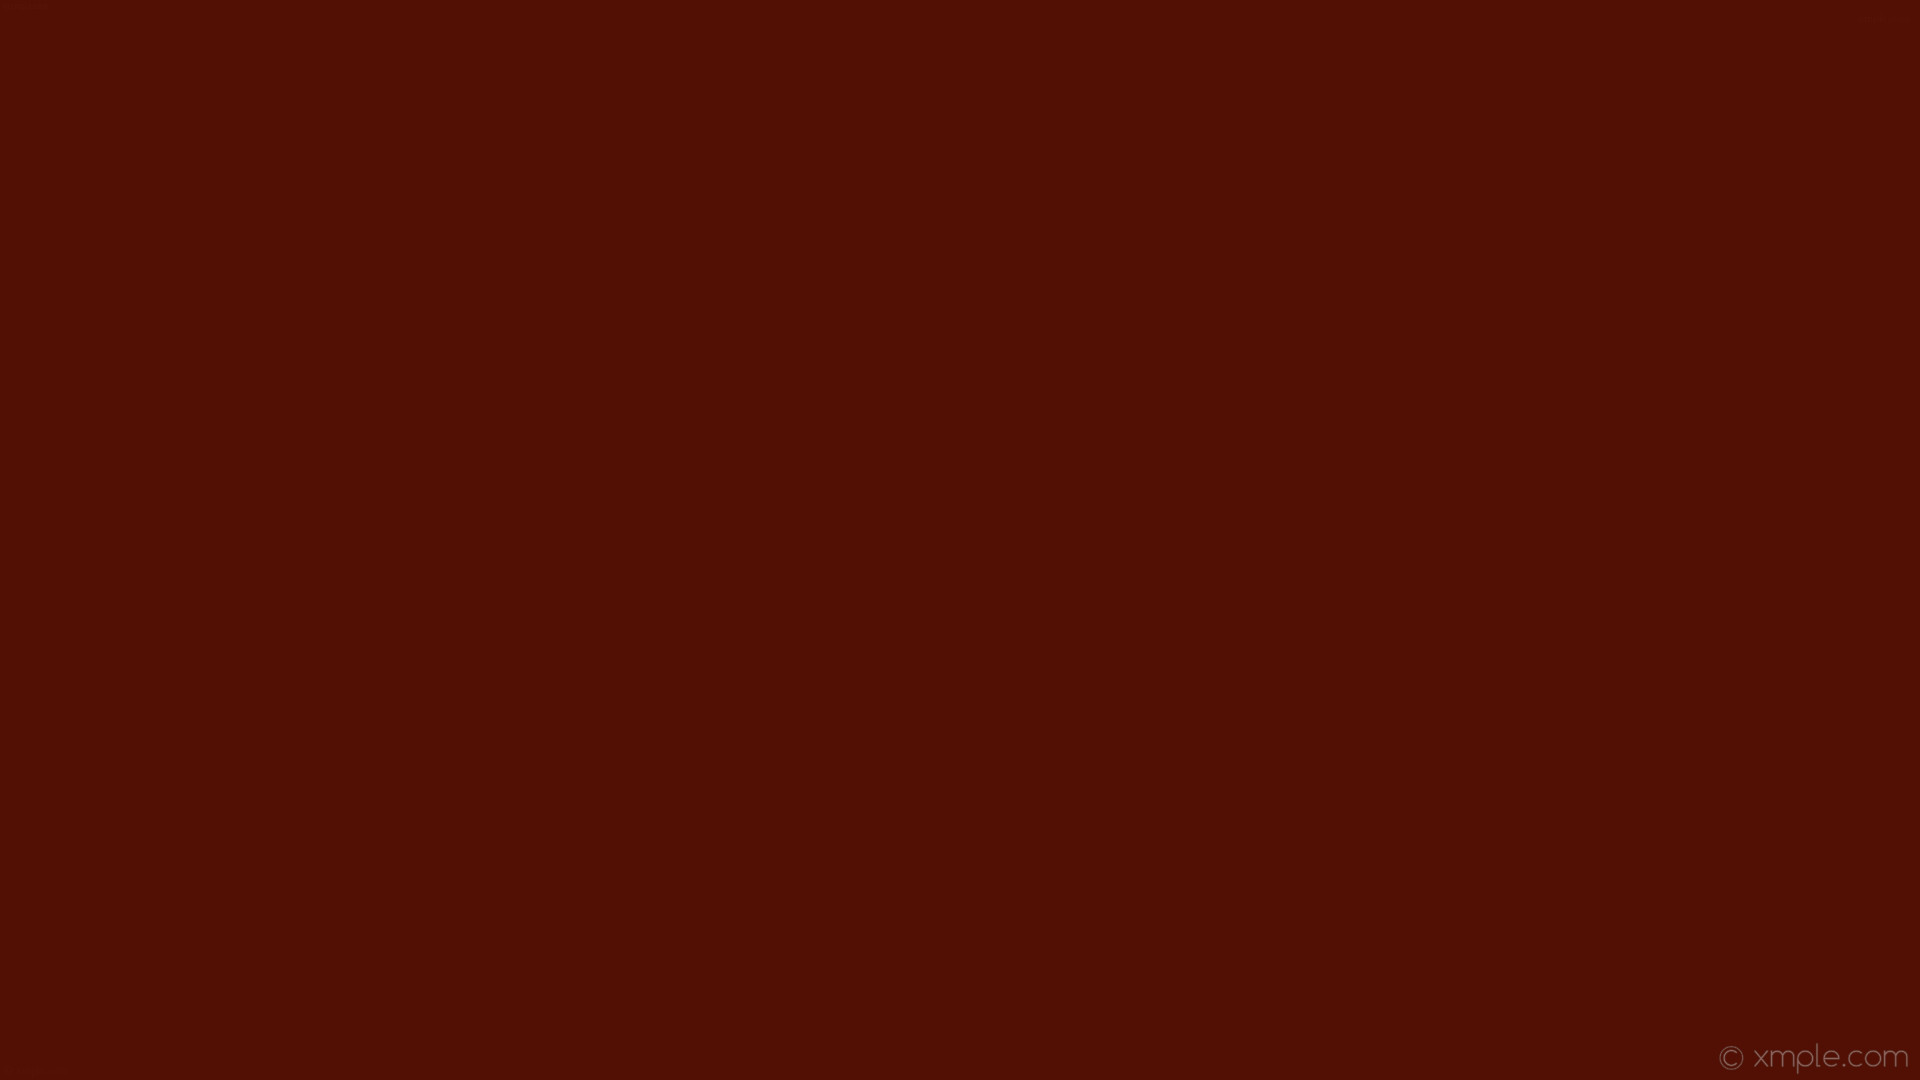 1920x1080 Wallpaper Solid Color One Colour Plain Single Red Dark 511003